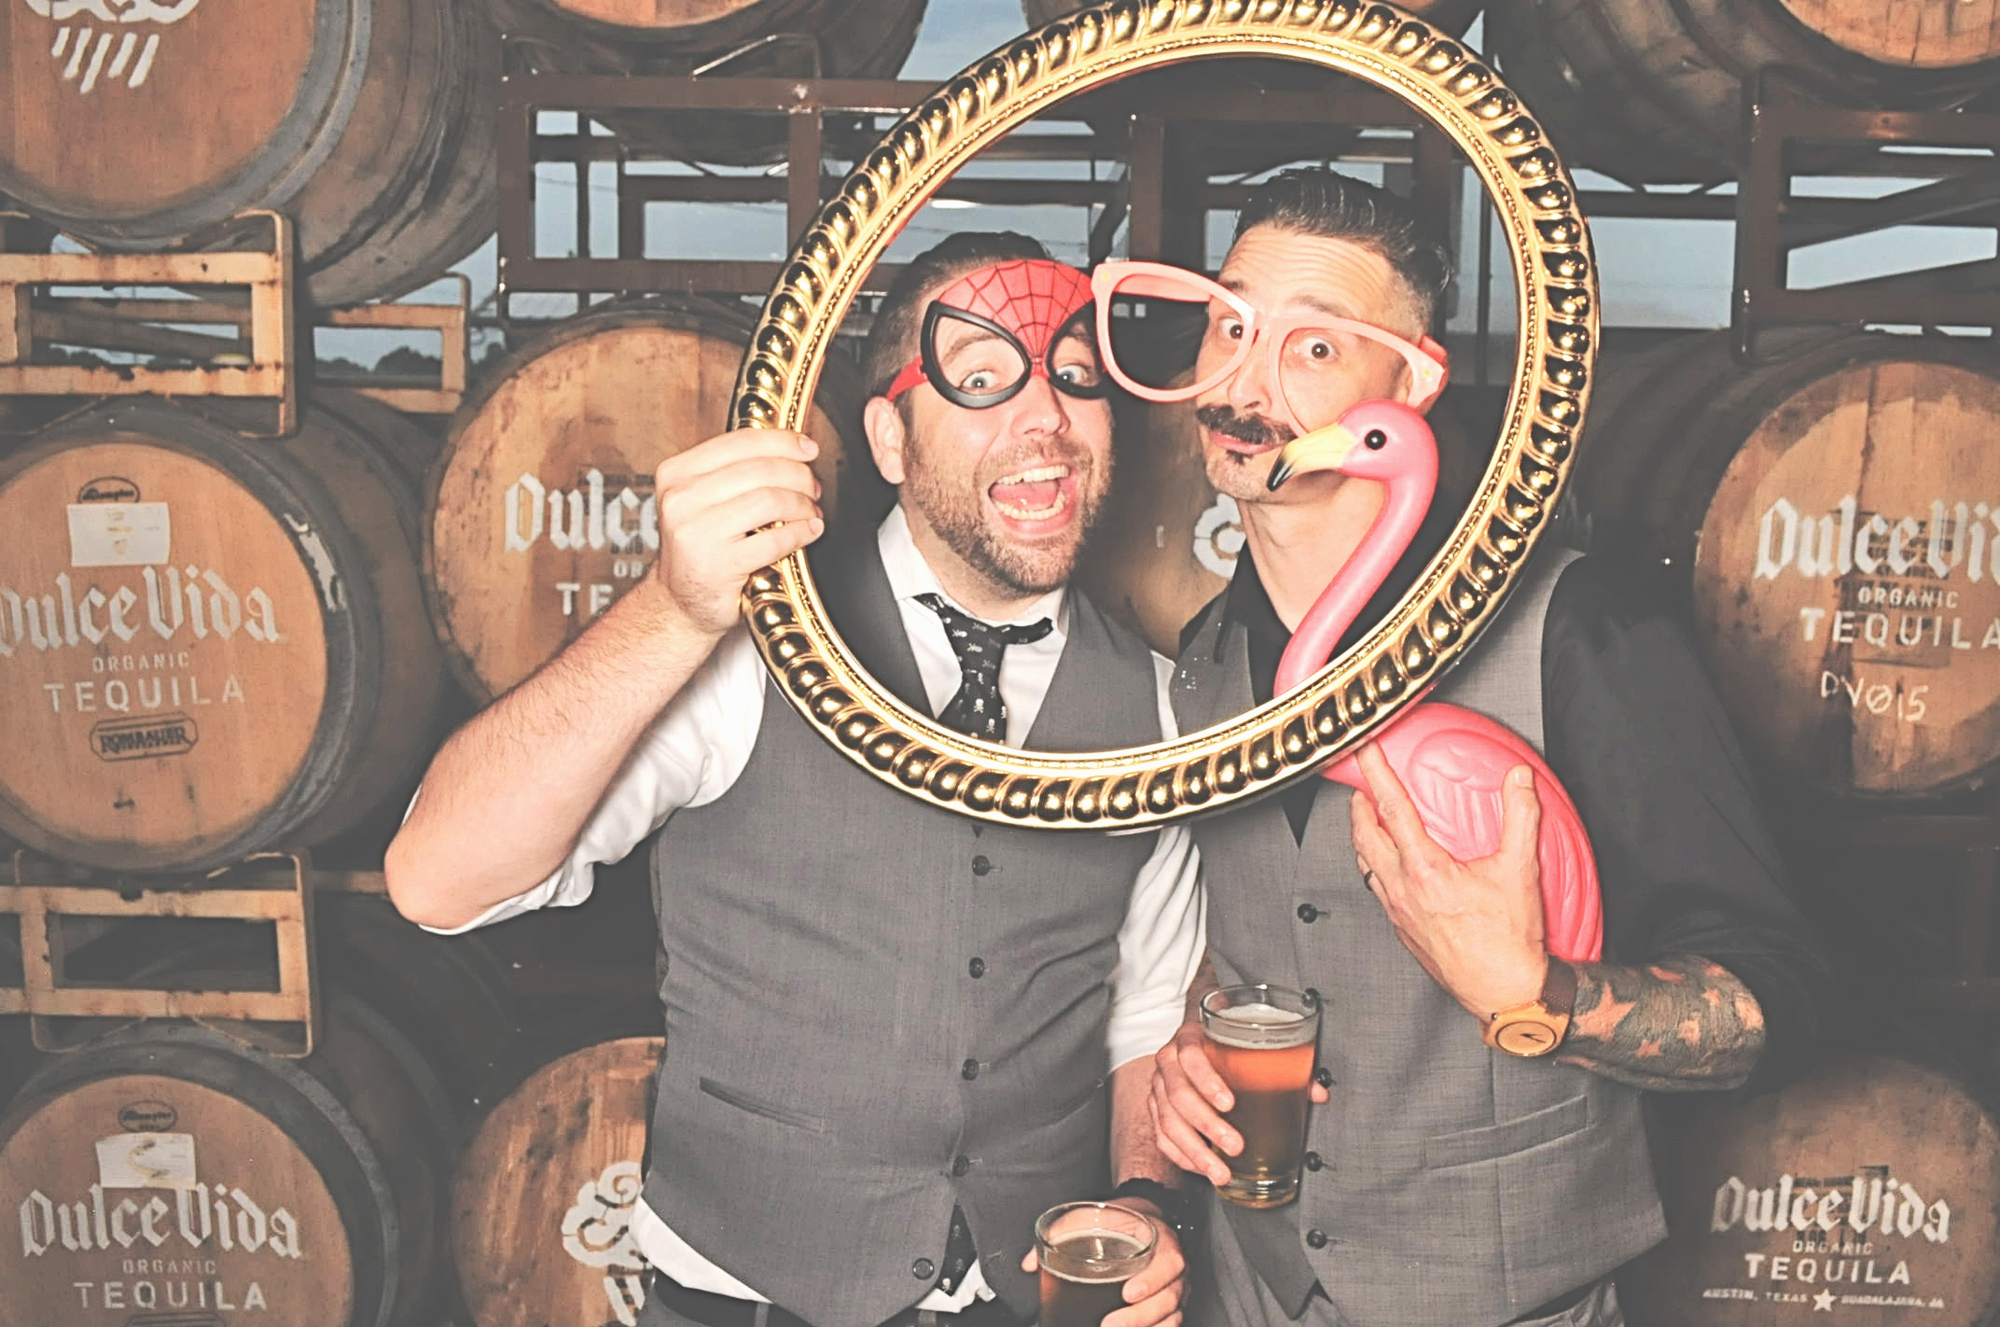 Atlanta Wild Heaven Craft Beers Brewery PhotoBooth - 10-Year Anniversary - RobotBooth 2